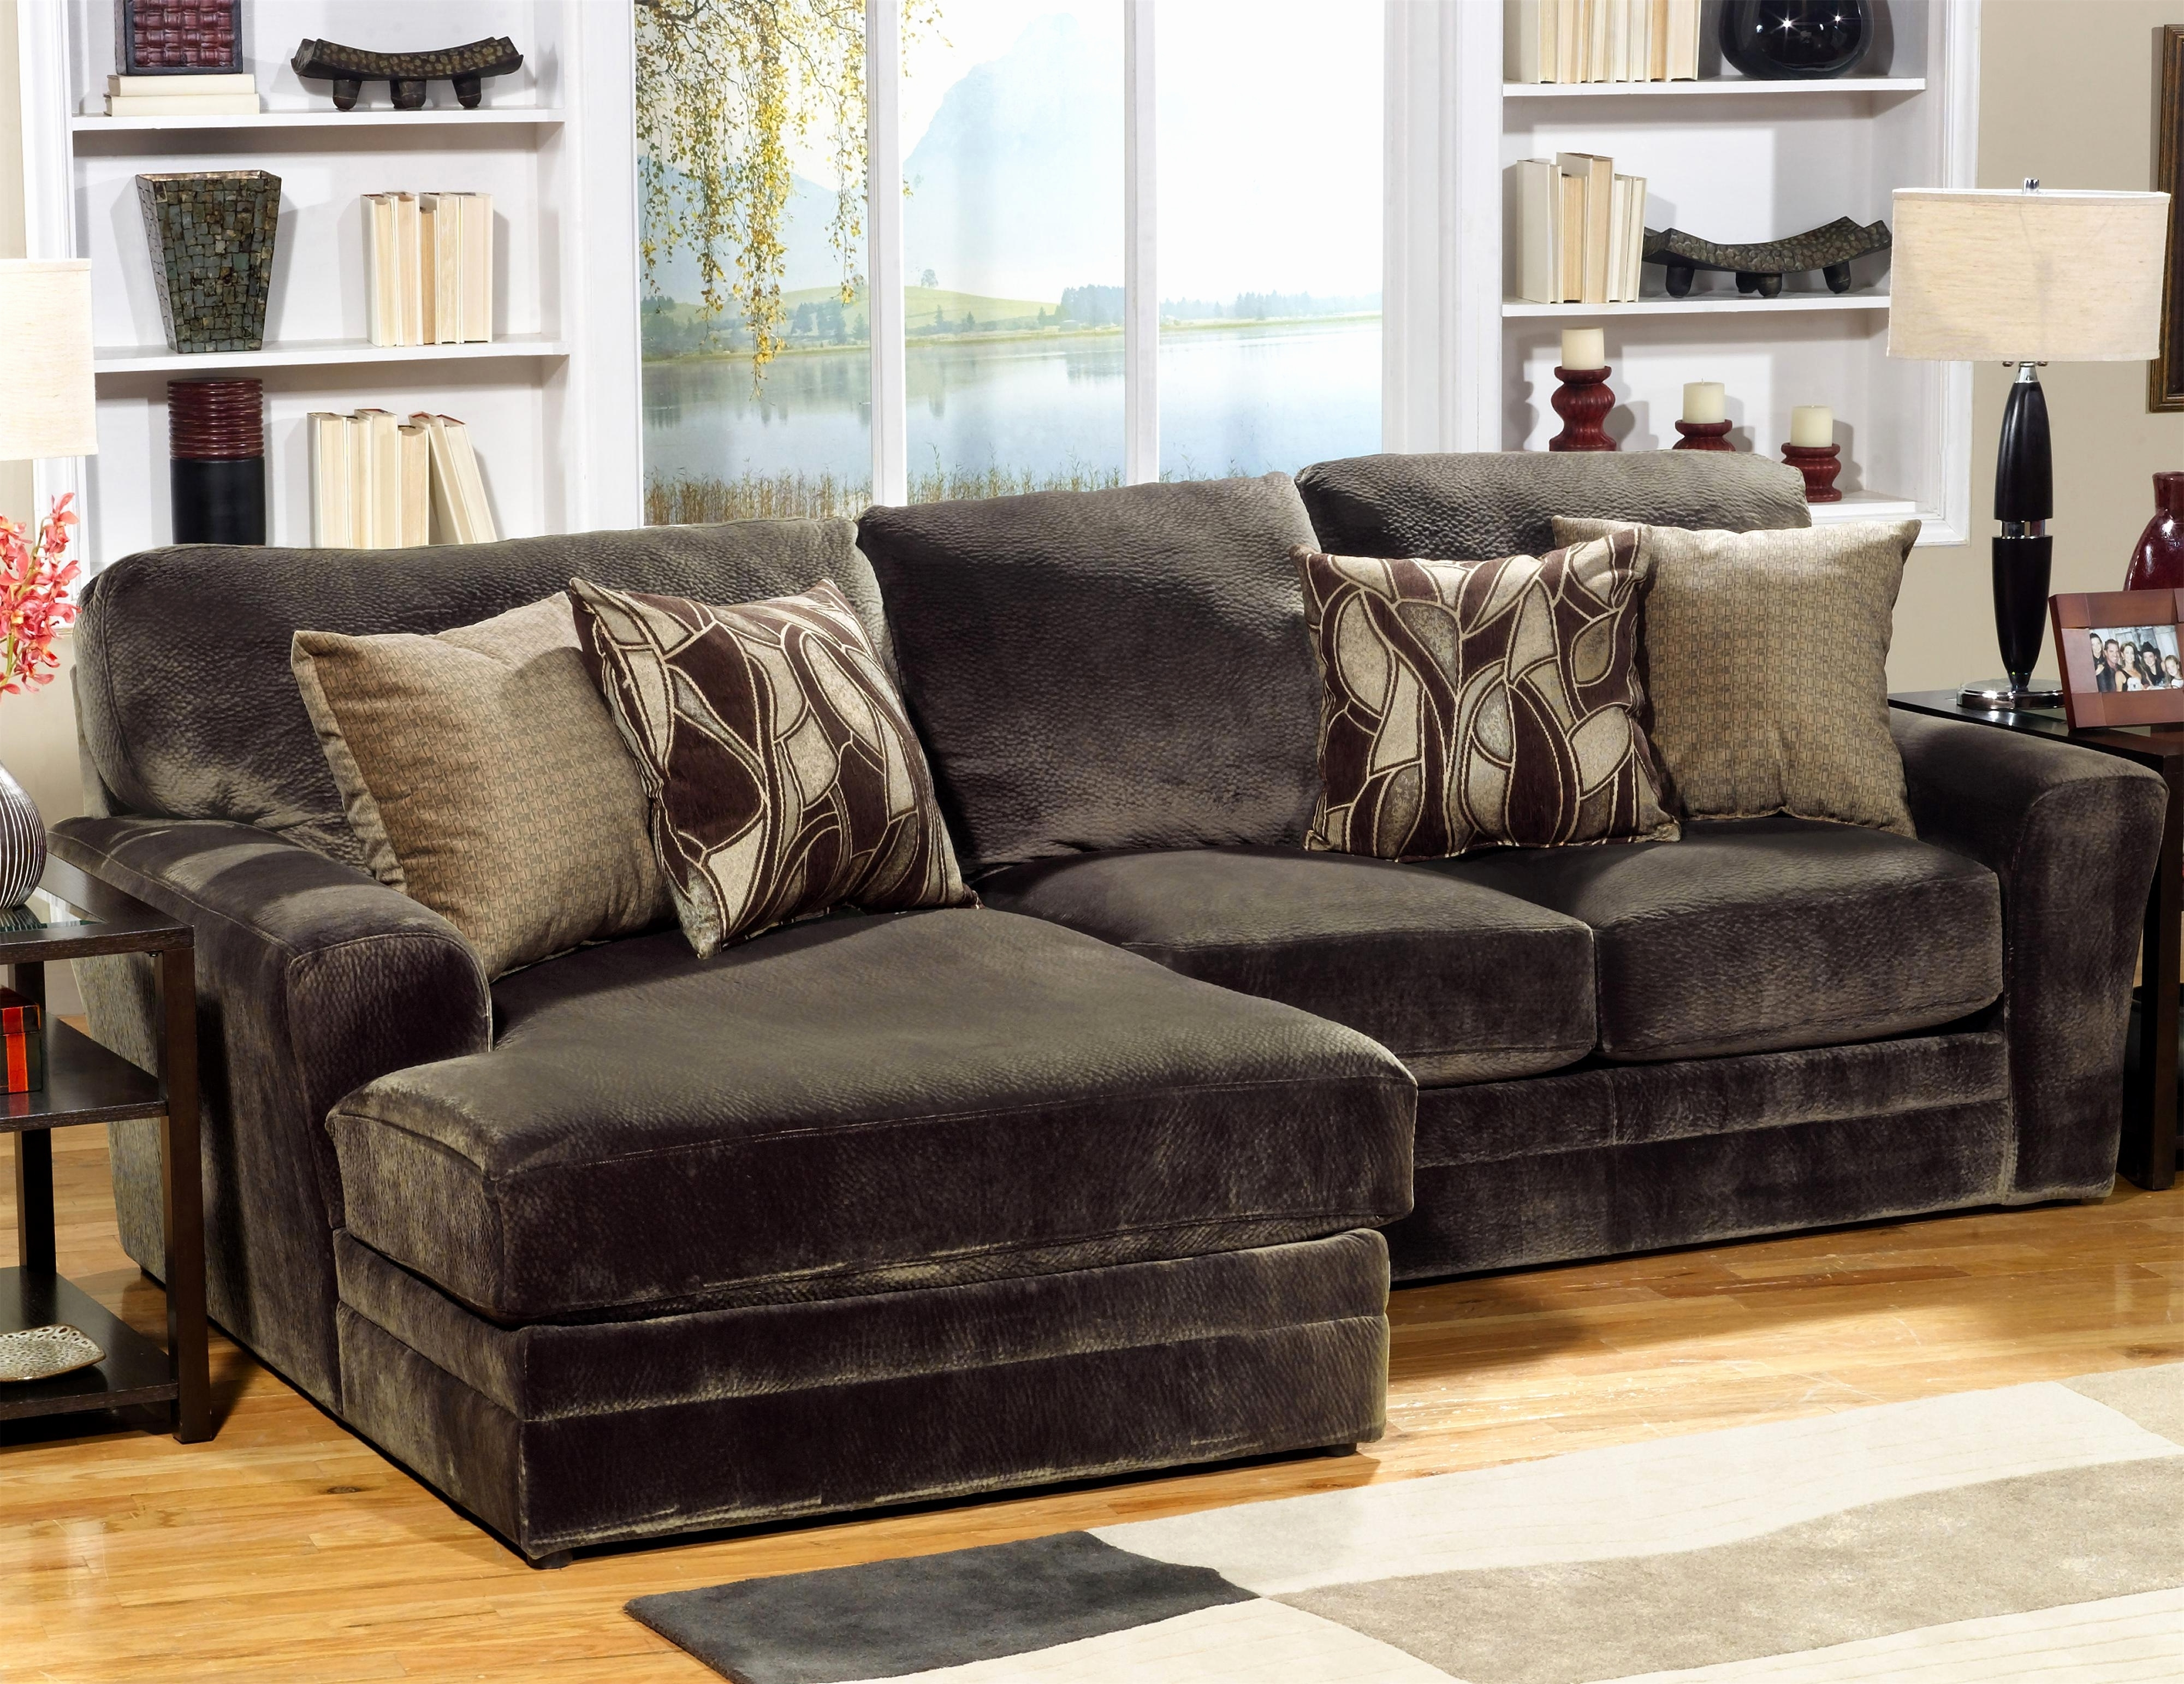 Widely Used Living Room Furniture Lancaster Pa Beautiful Furniture Corinthian For Lancaster Pa Sectional Sofas (View 7 of 20)